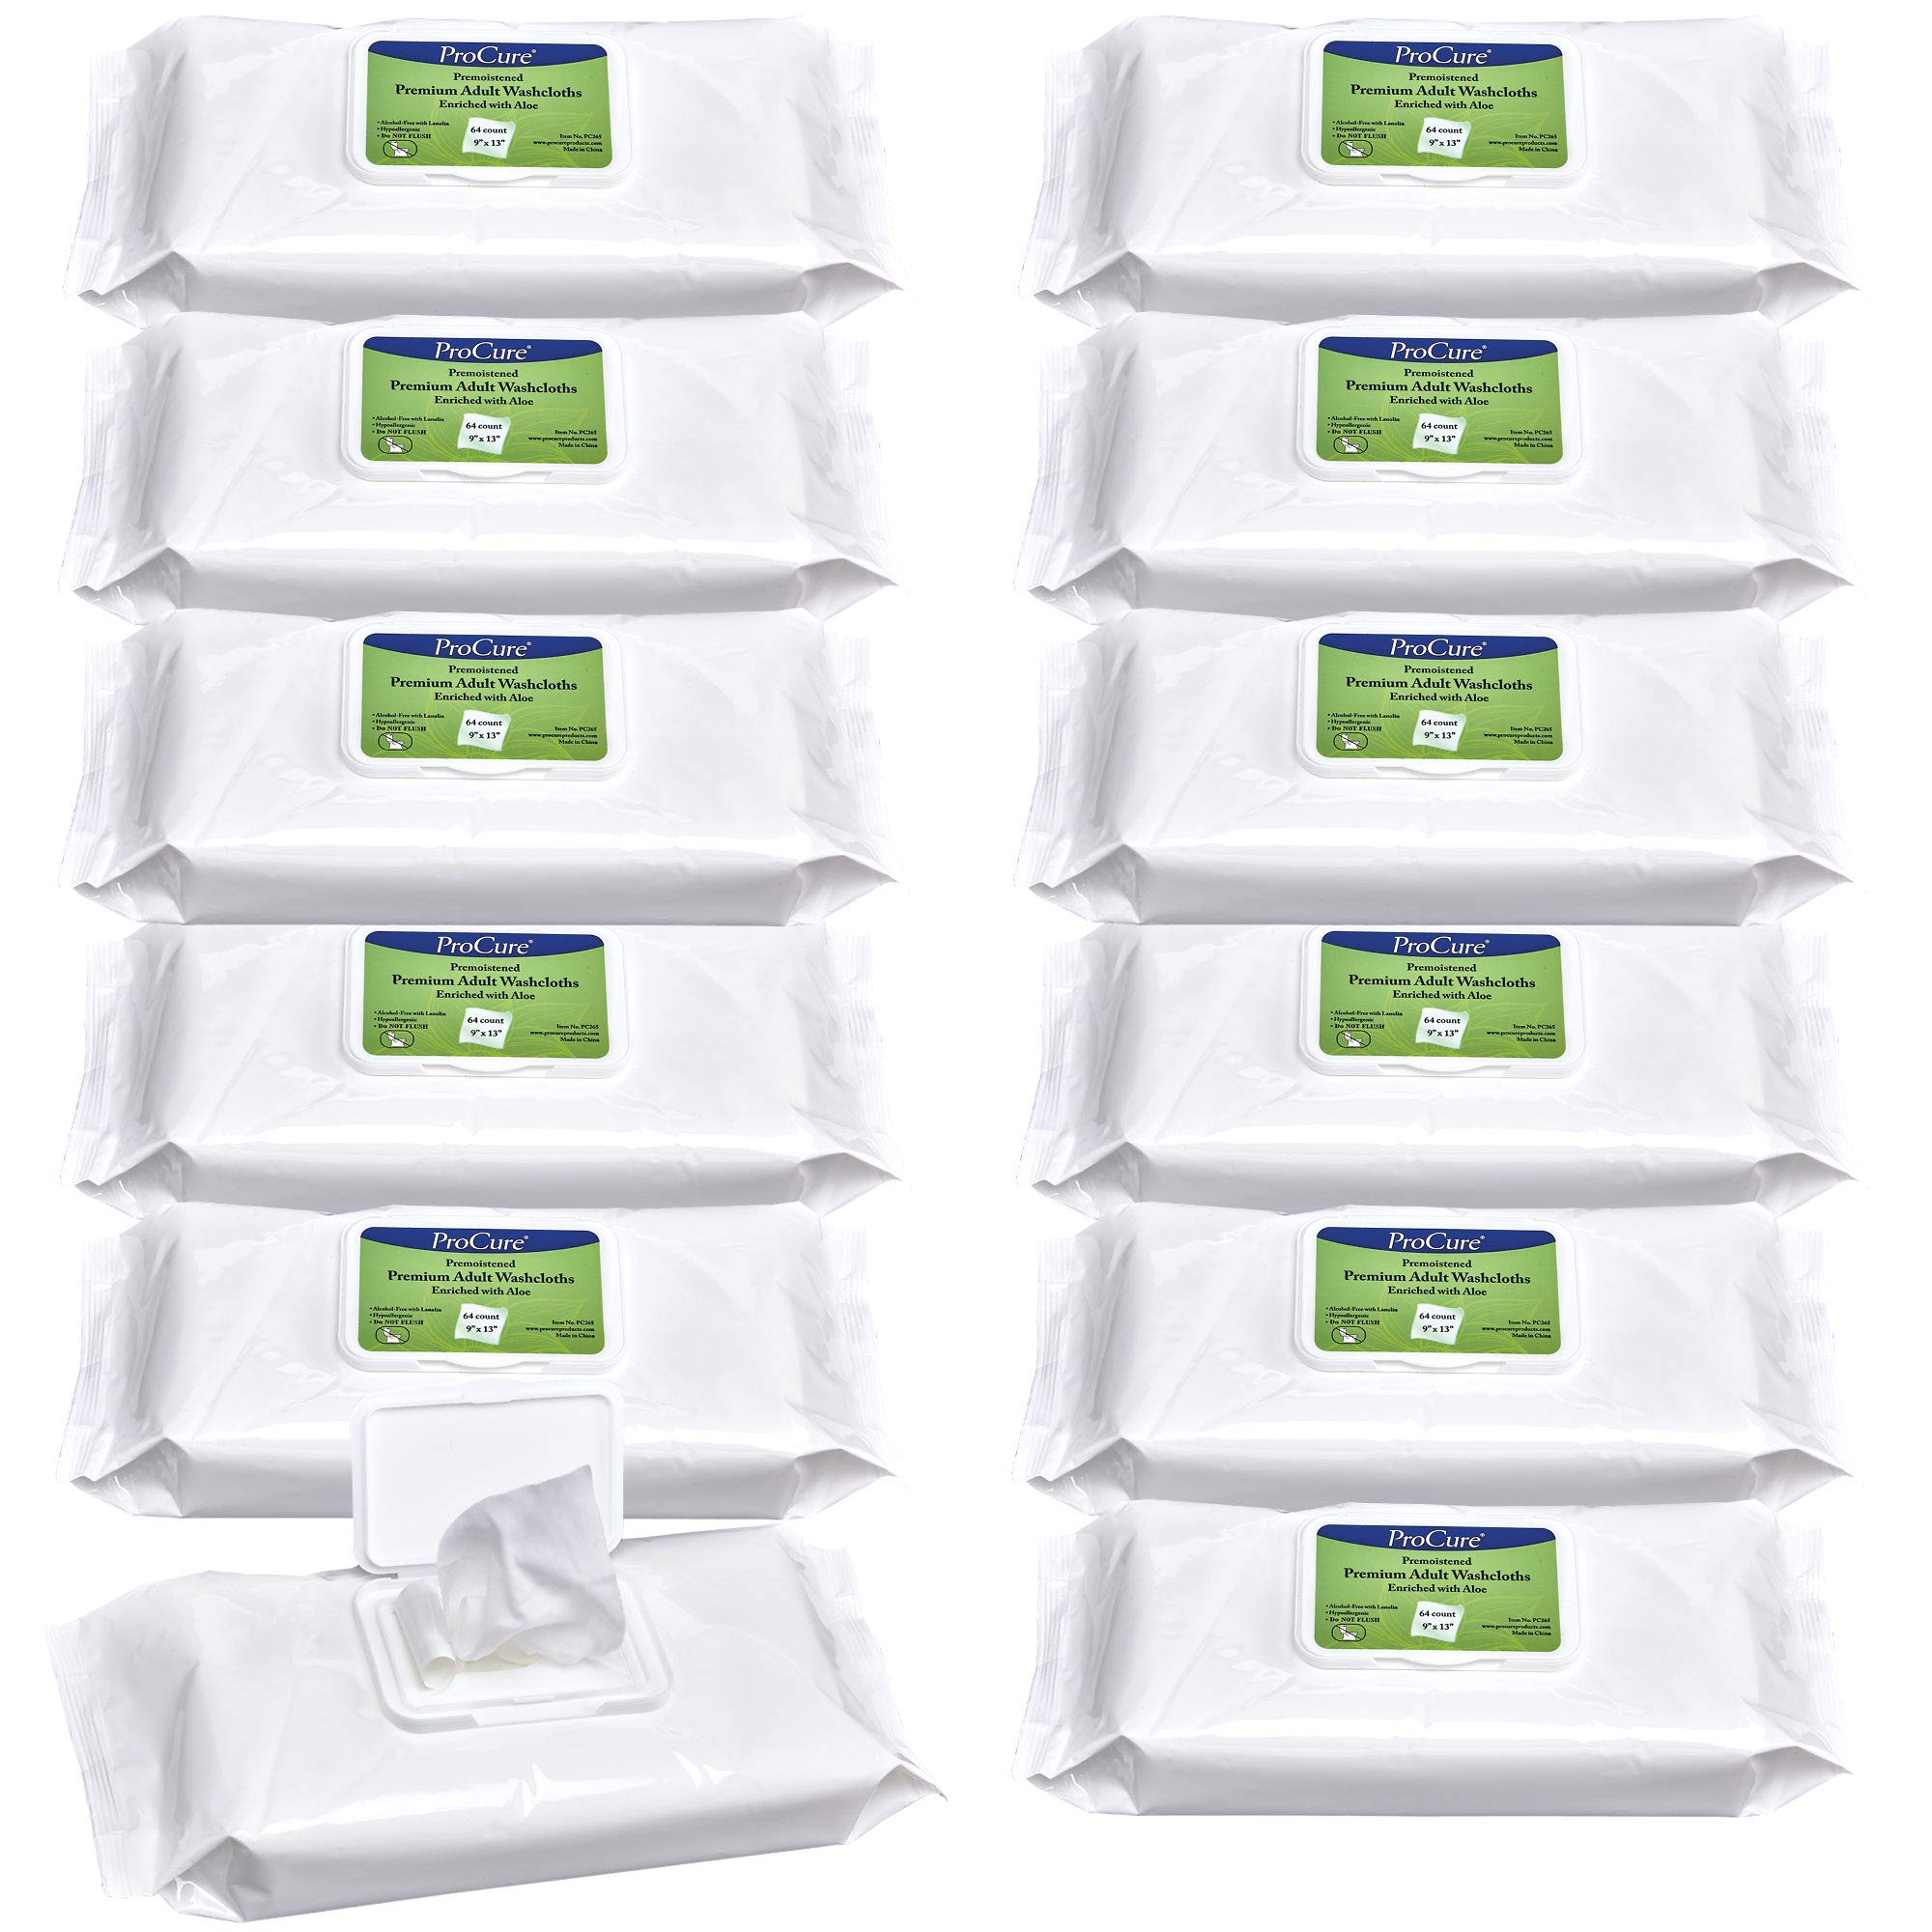 "Disposable Wet Adult Wipes, 768 Pack - Pre Moistened Soft Washcloths for Elderly and Babies - Enriched with Aloe and Lanolin, Hypoallergenic and Alcohol Free - Premium Quality, 9""x13"""